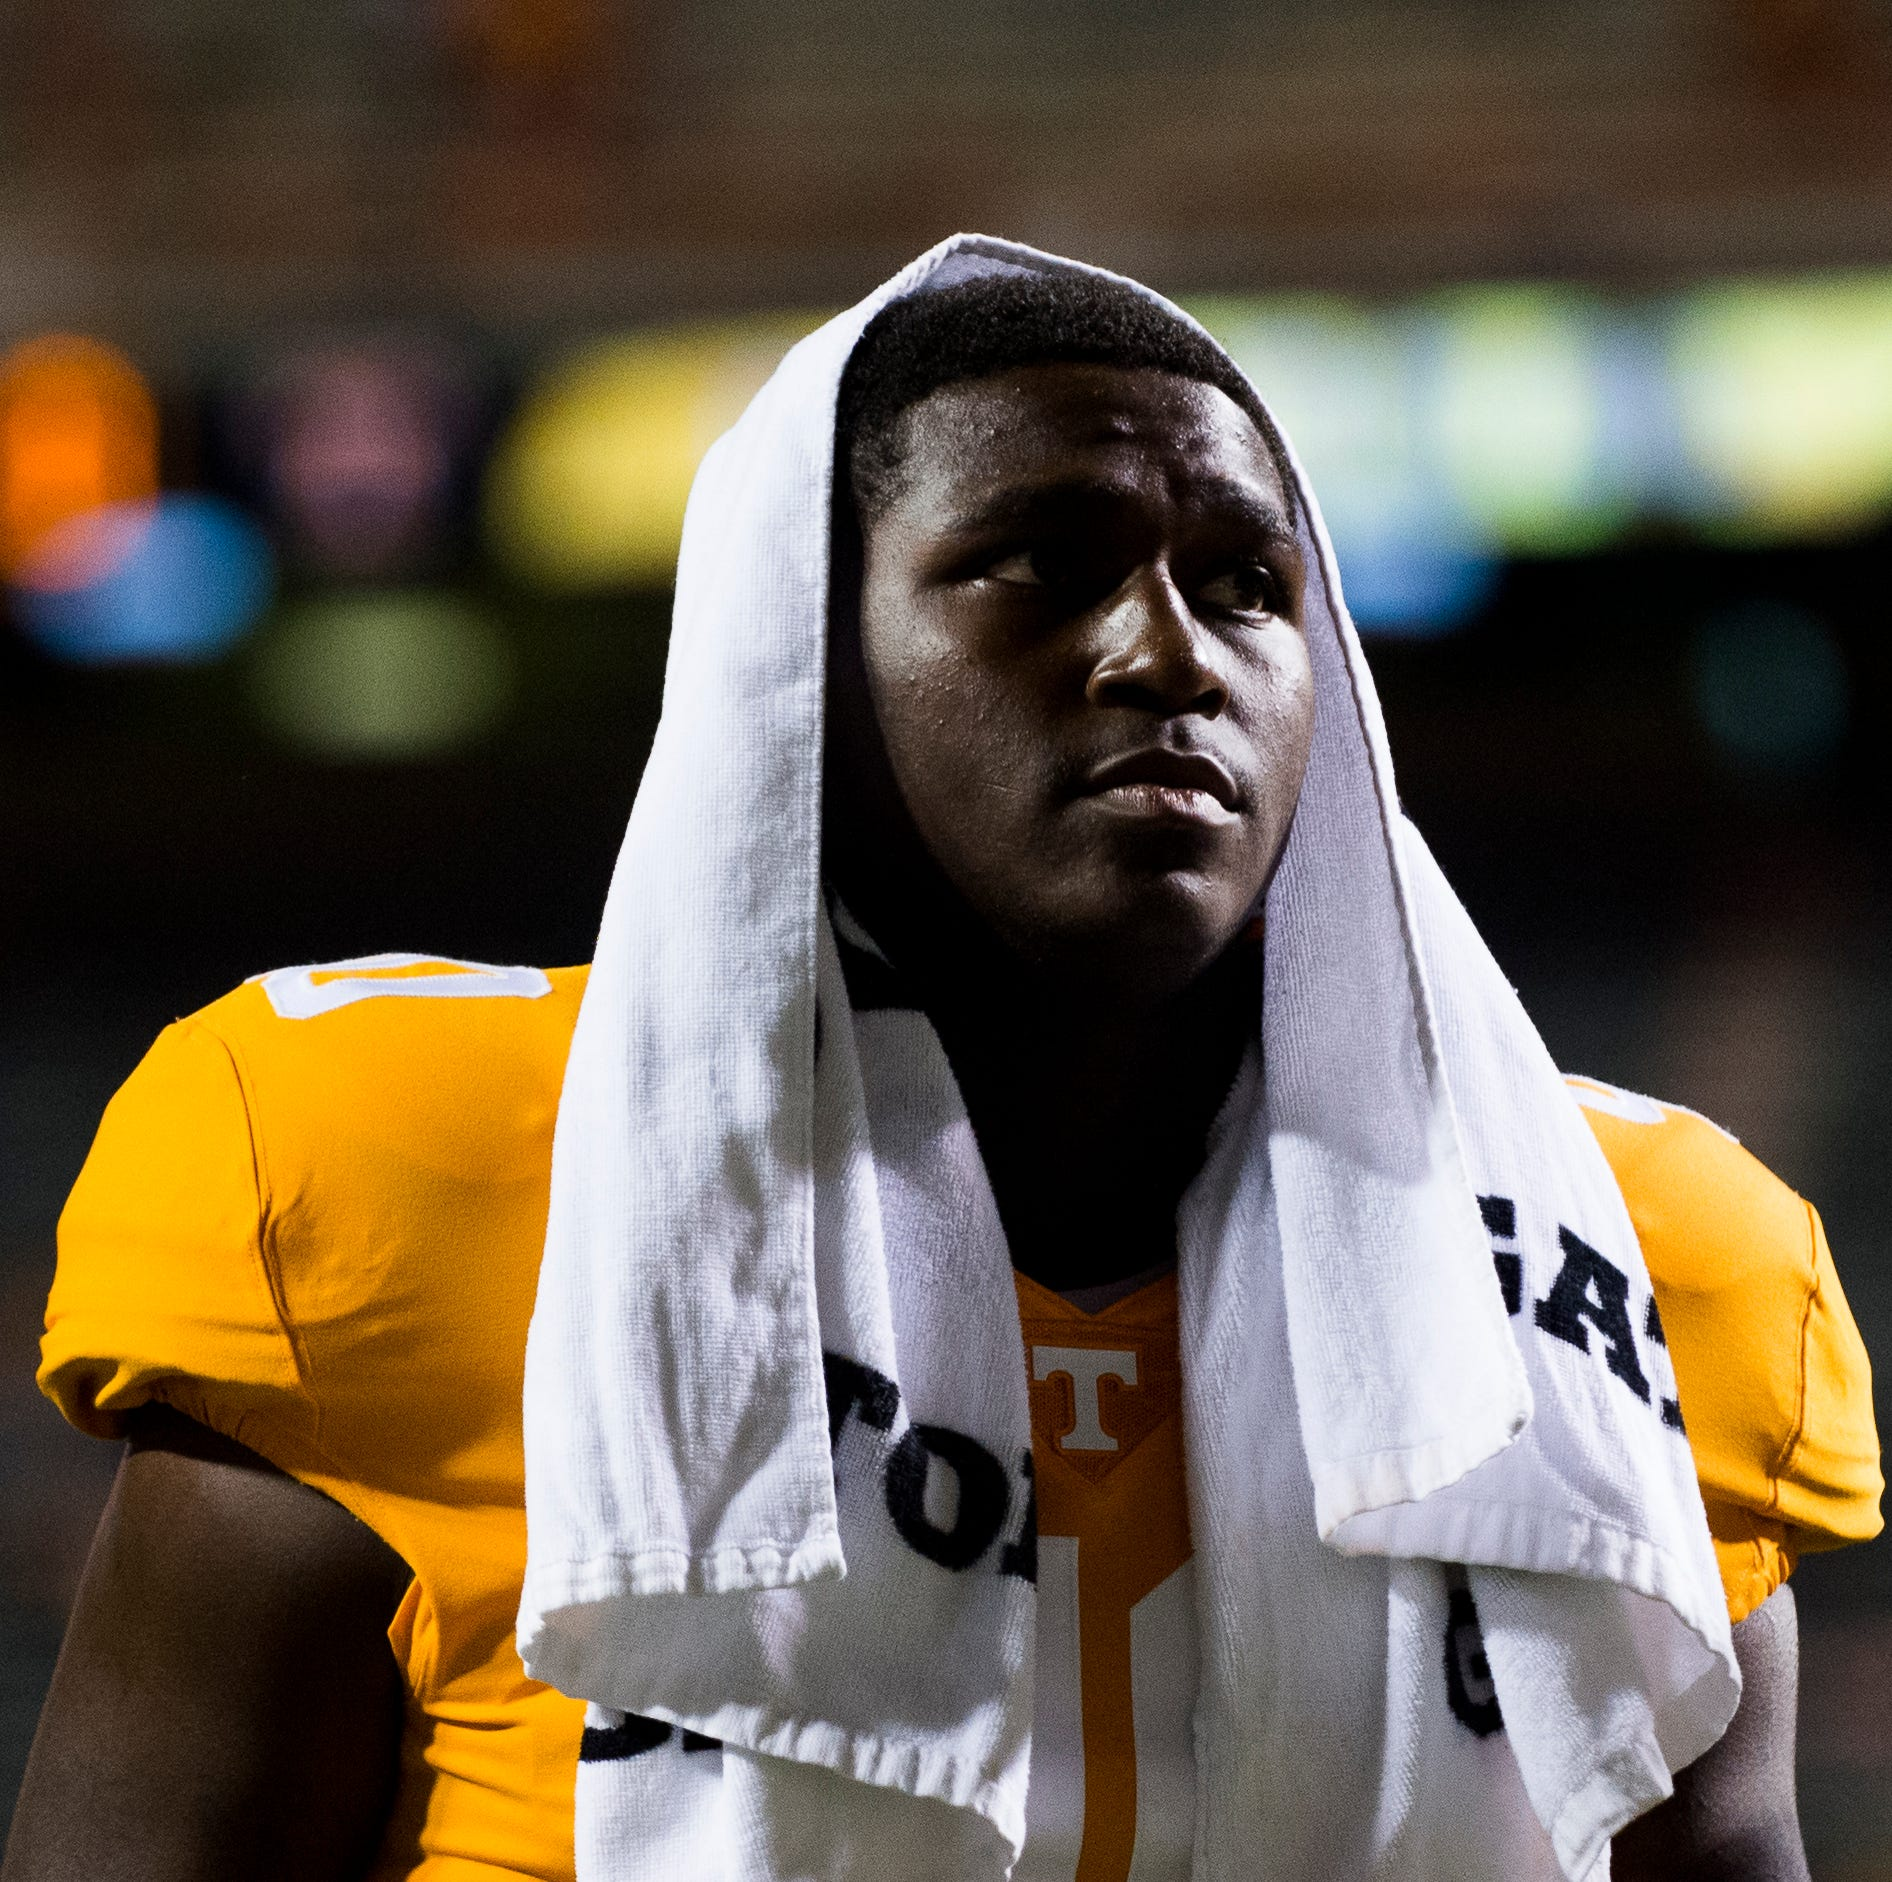 JJ Peterson among UT Vols players who will redshirt